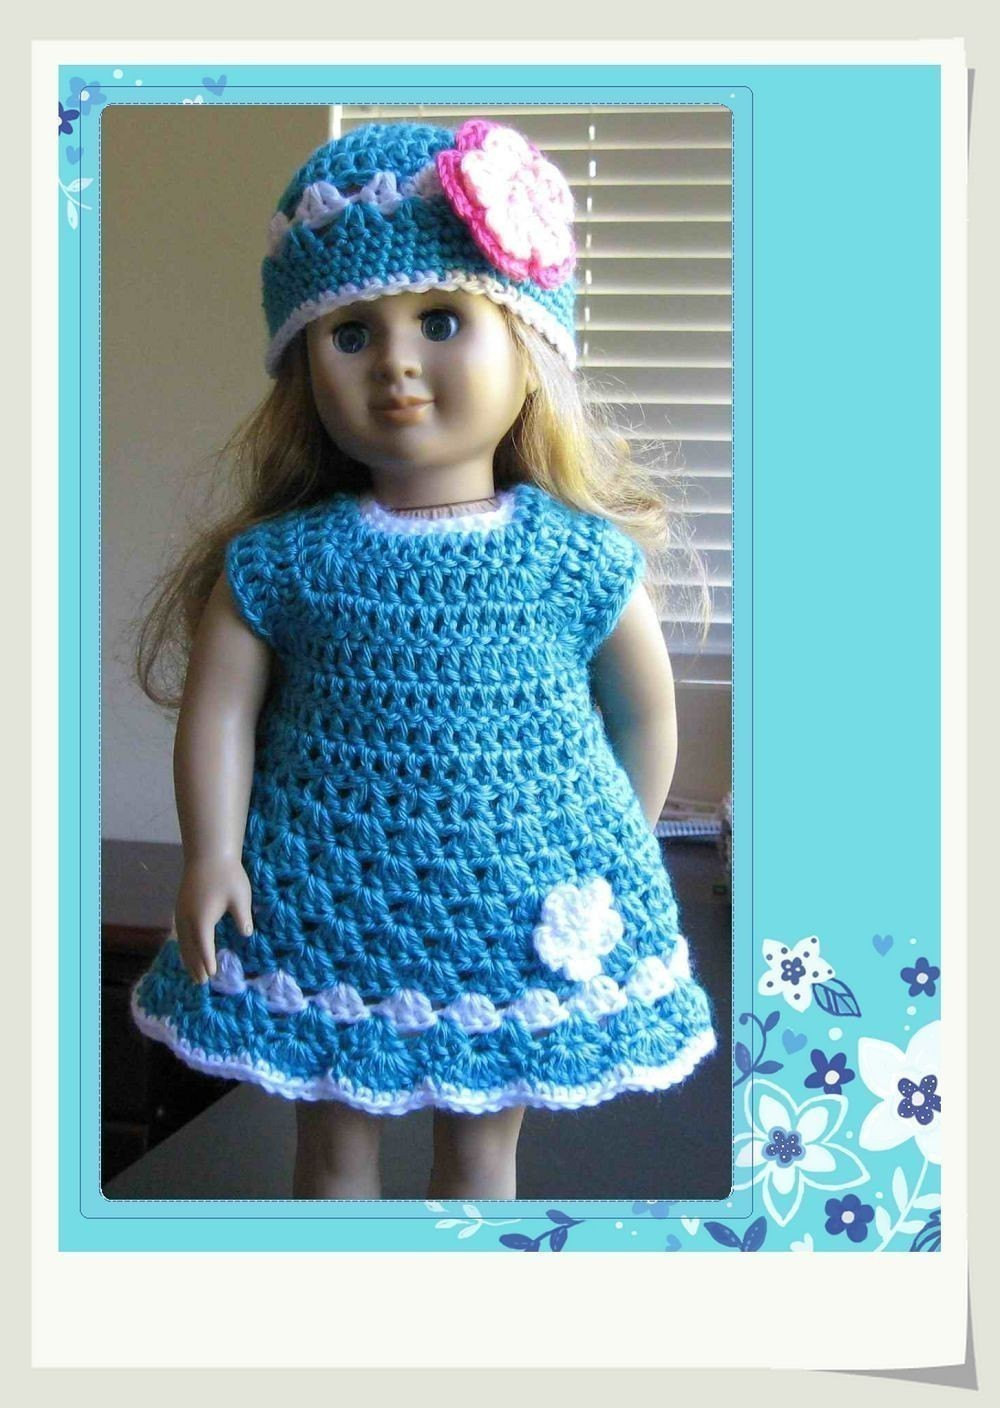 Best Of Pattern Crocheted Doll Clothes Dress for American Girl Gotz American Doll Dresses Of Great 47 Images American Doll Dresses